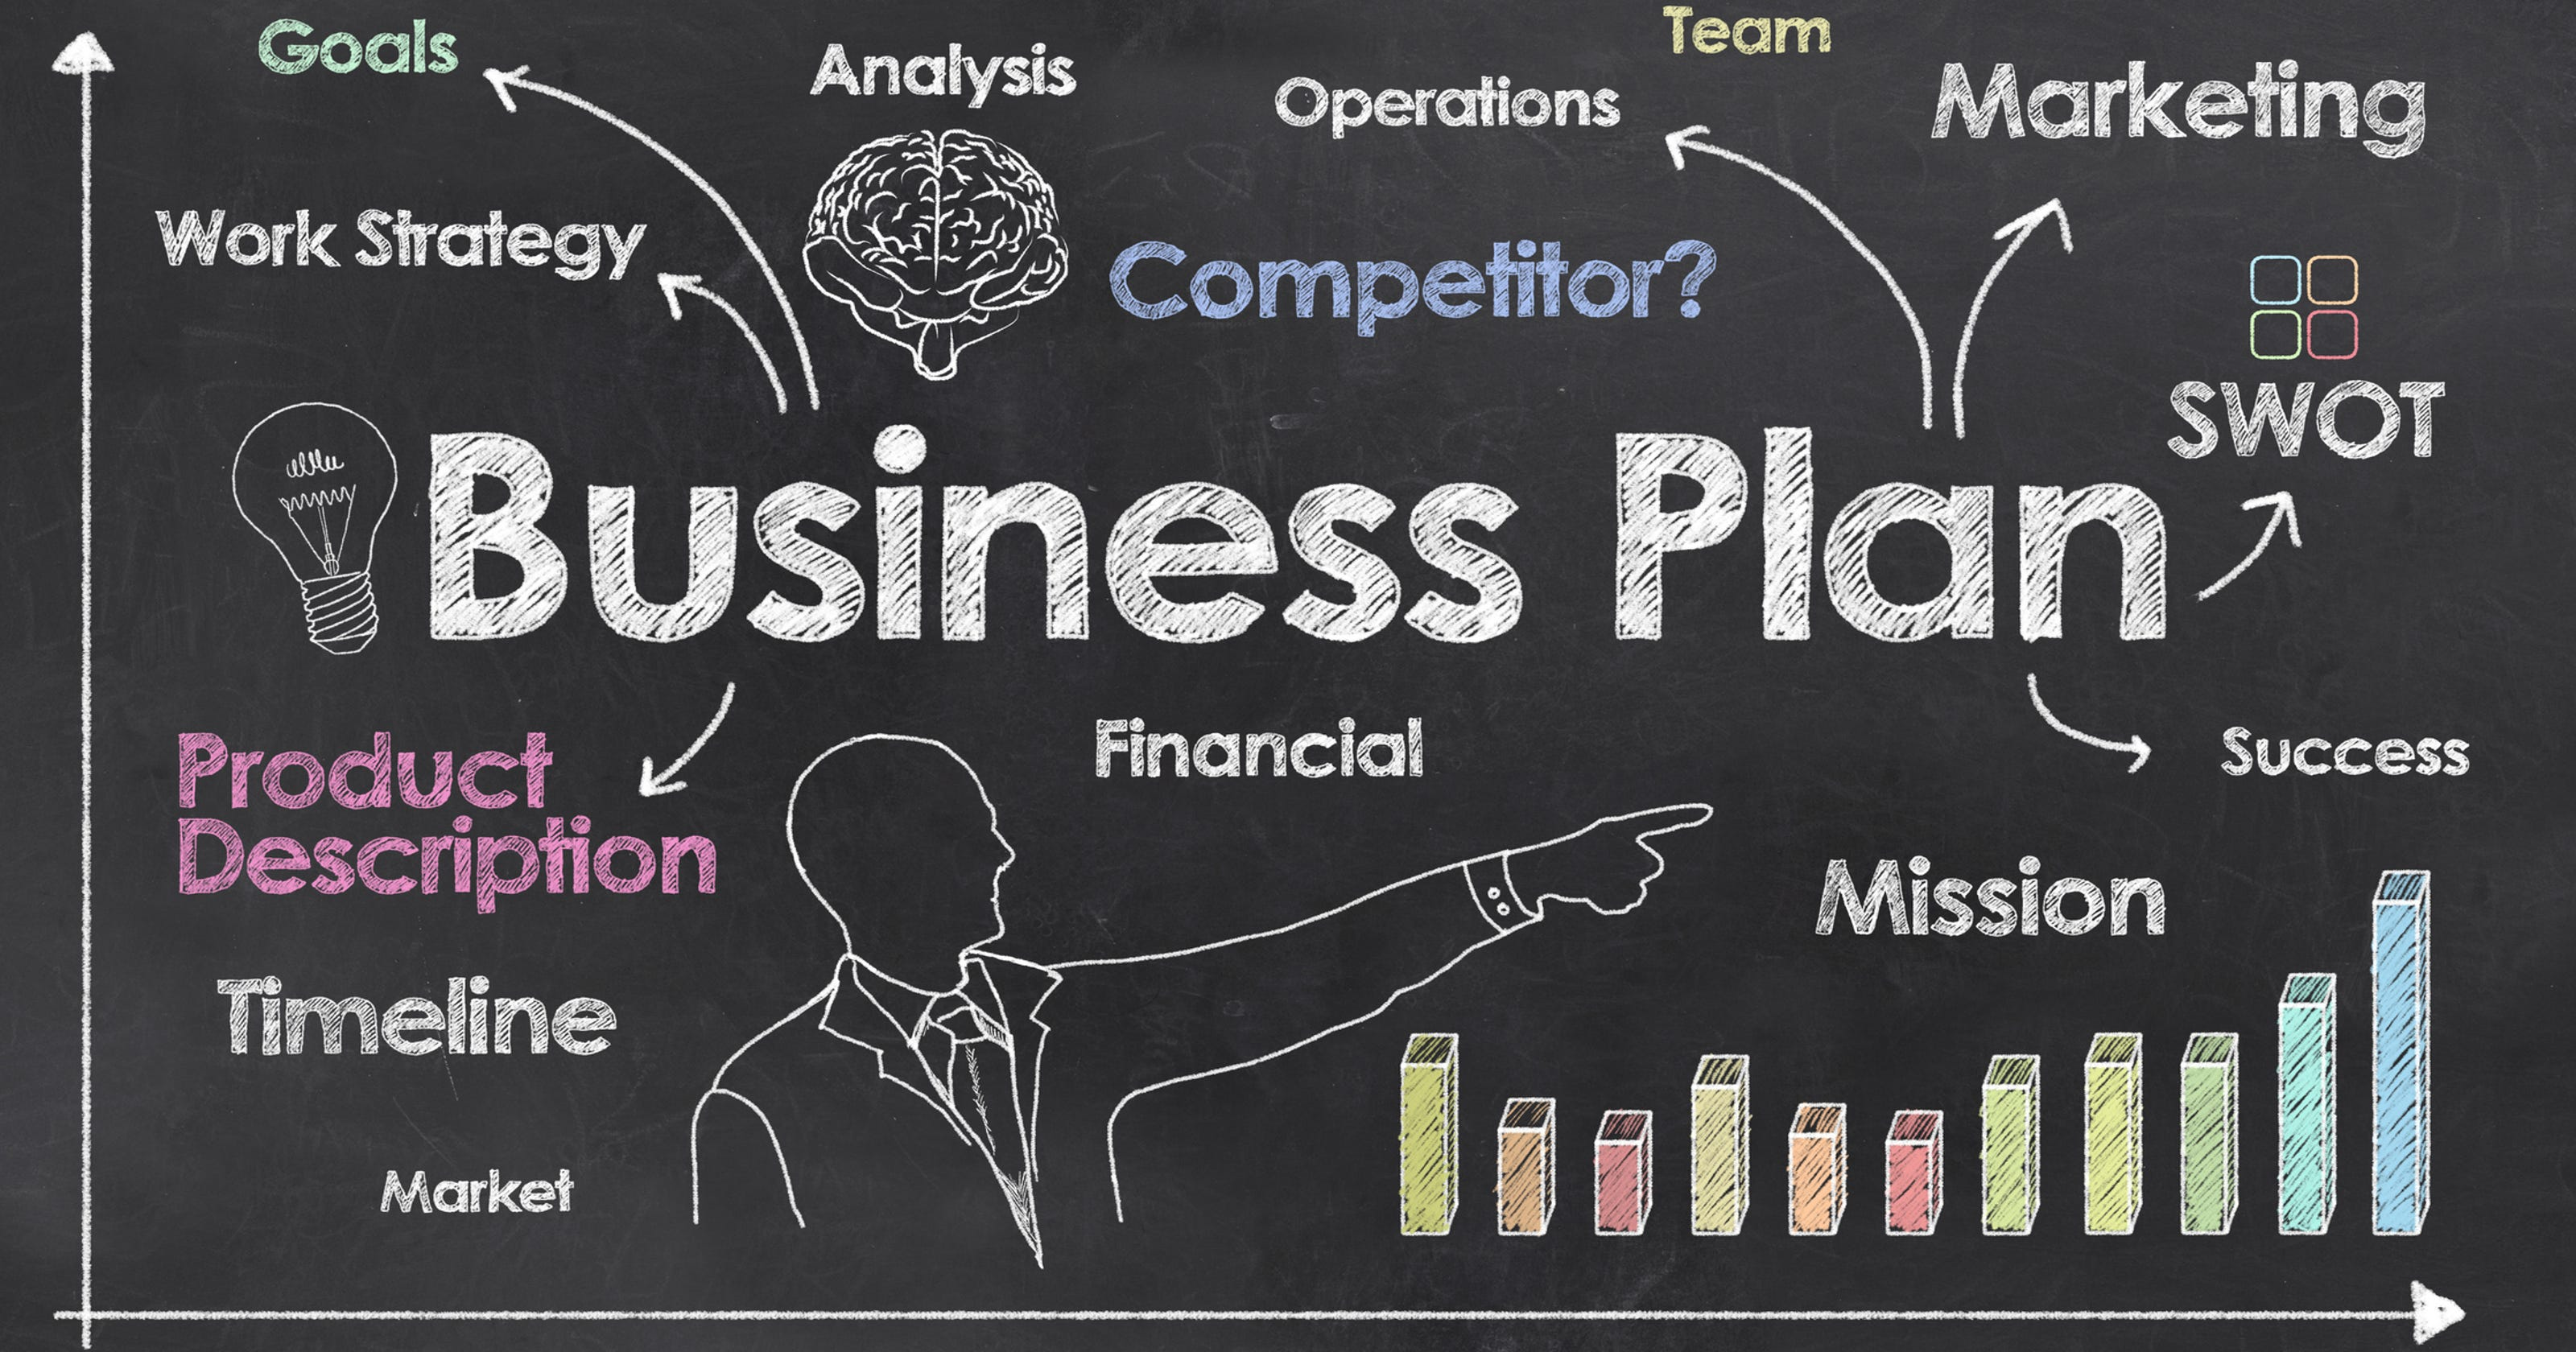 5 things that can make your business plan fail and how to avoid them